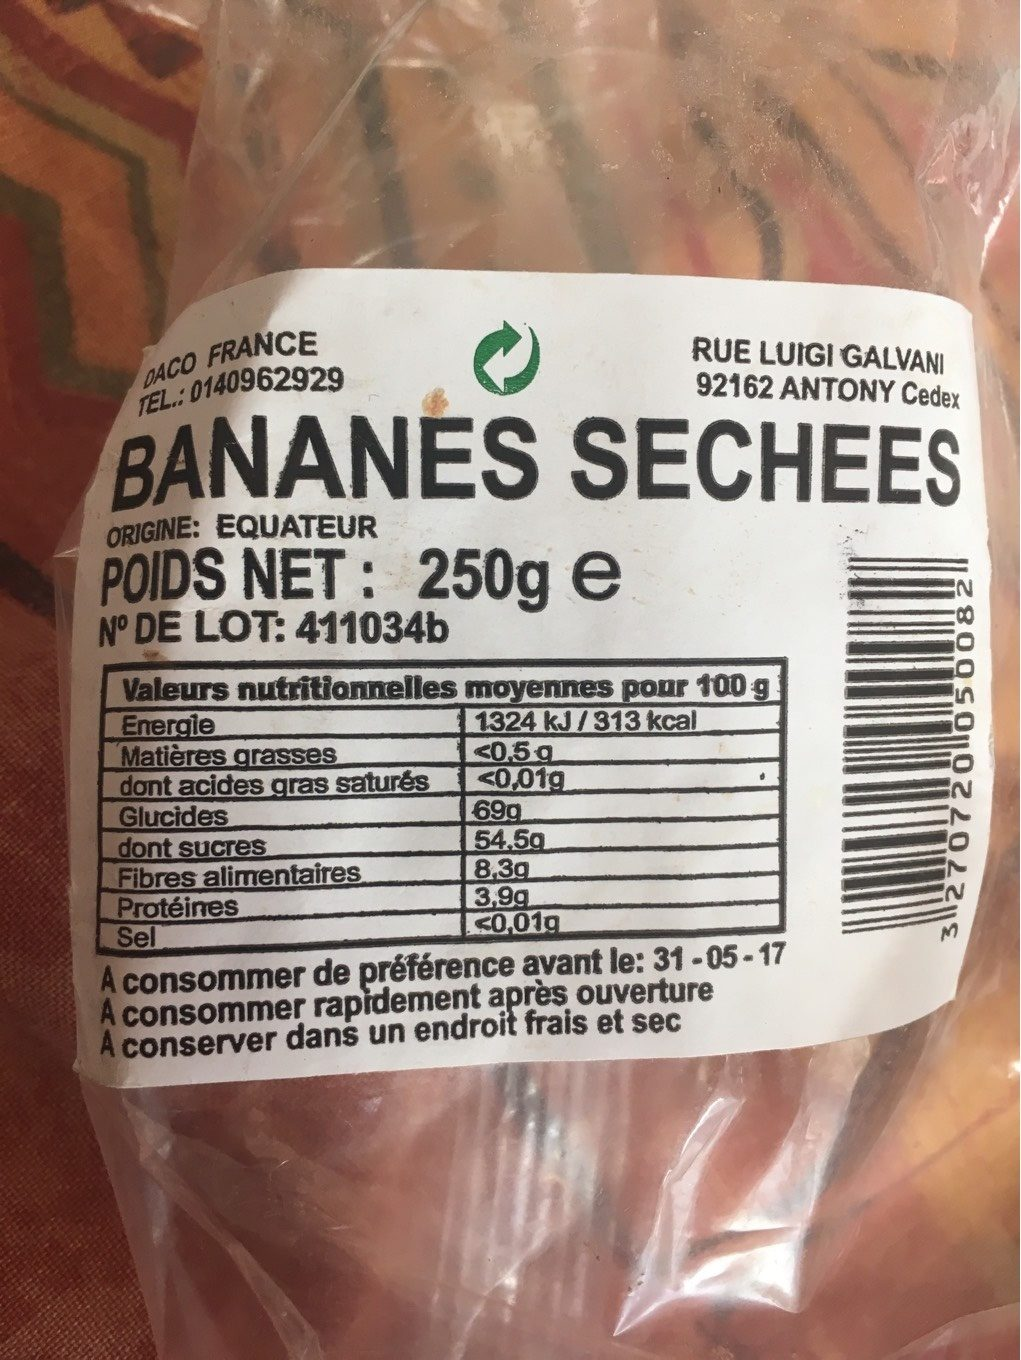 Bananes sechees - Nutrition facts